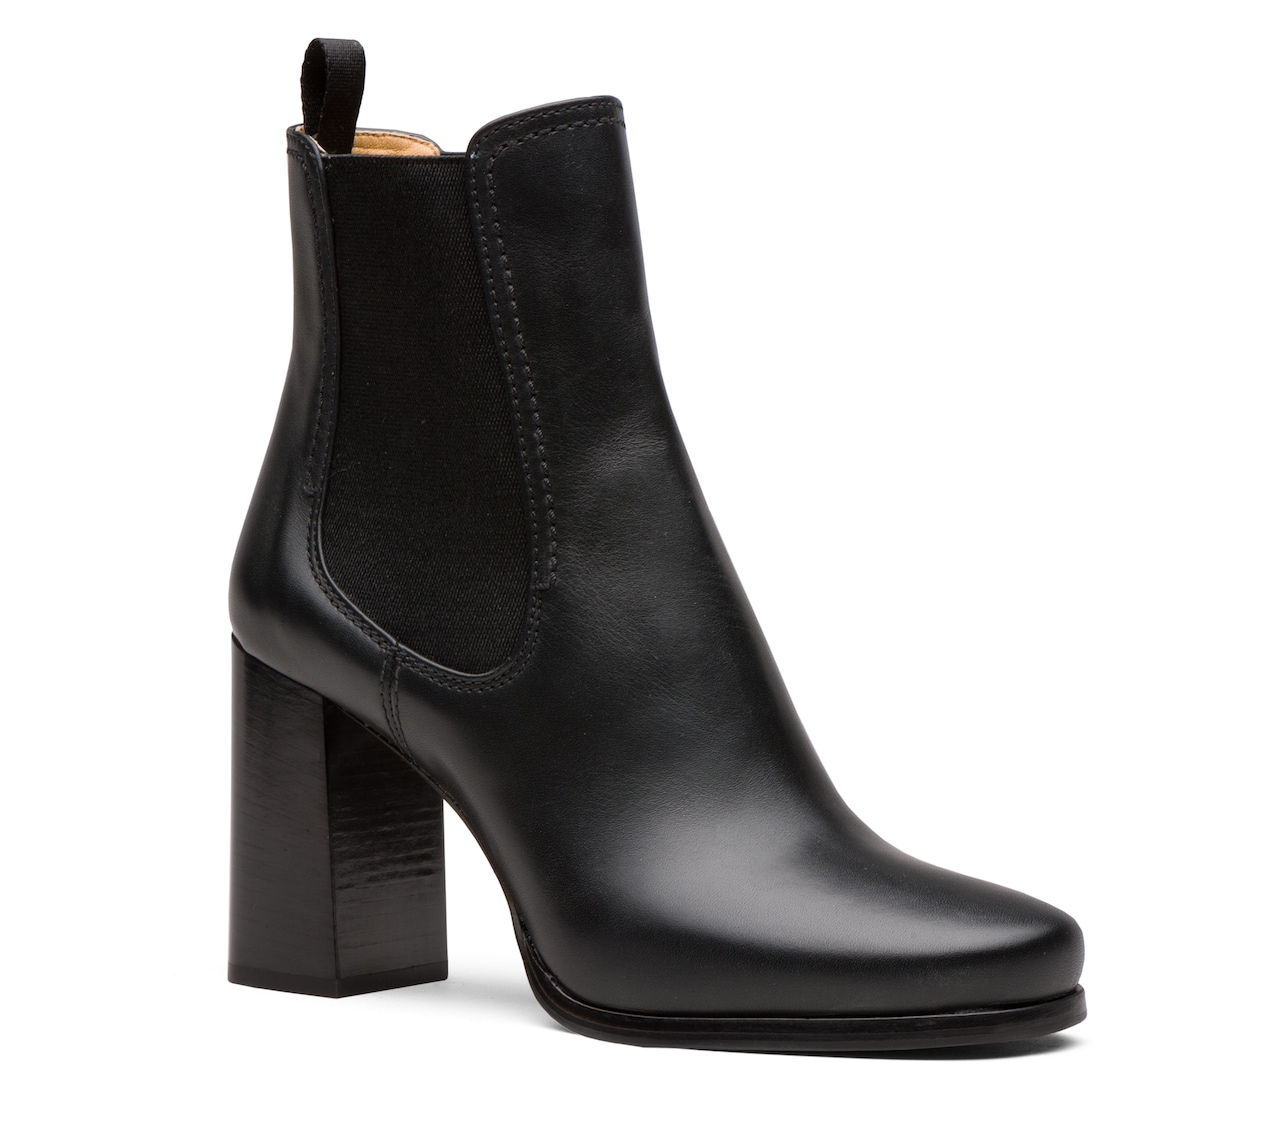 CALF LEATHER BOOTIES BLACK